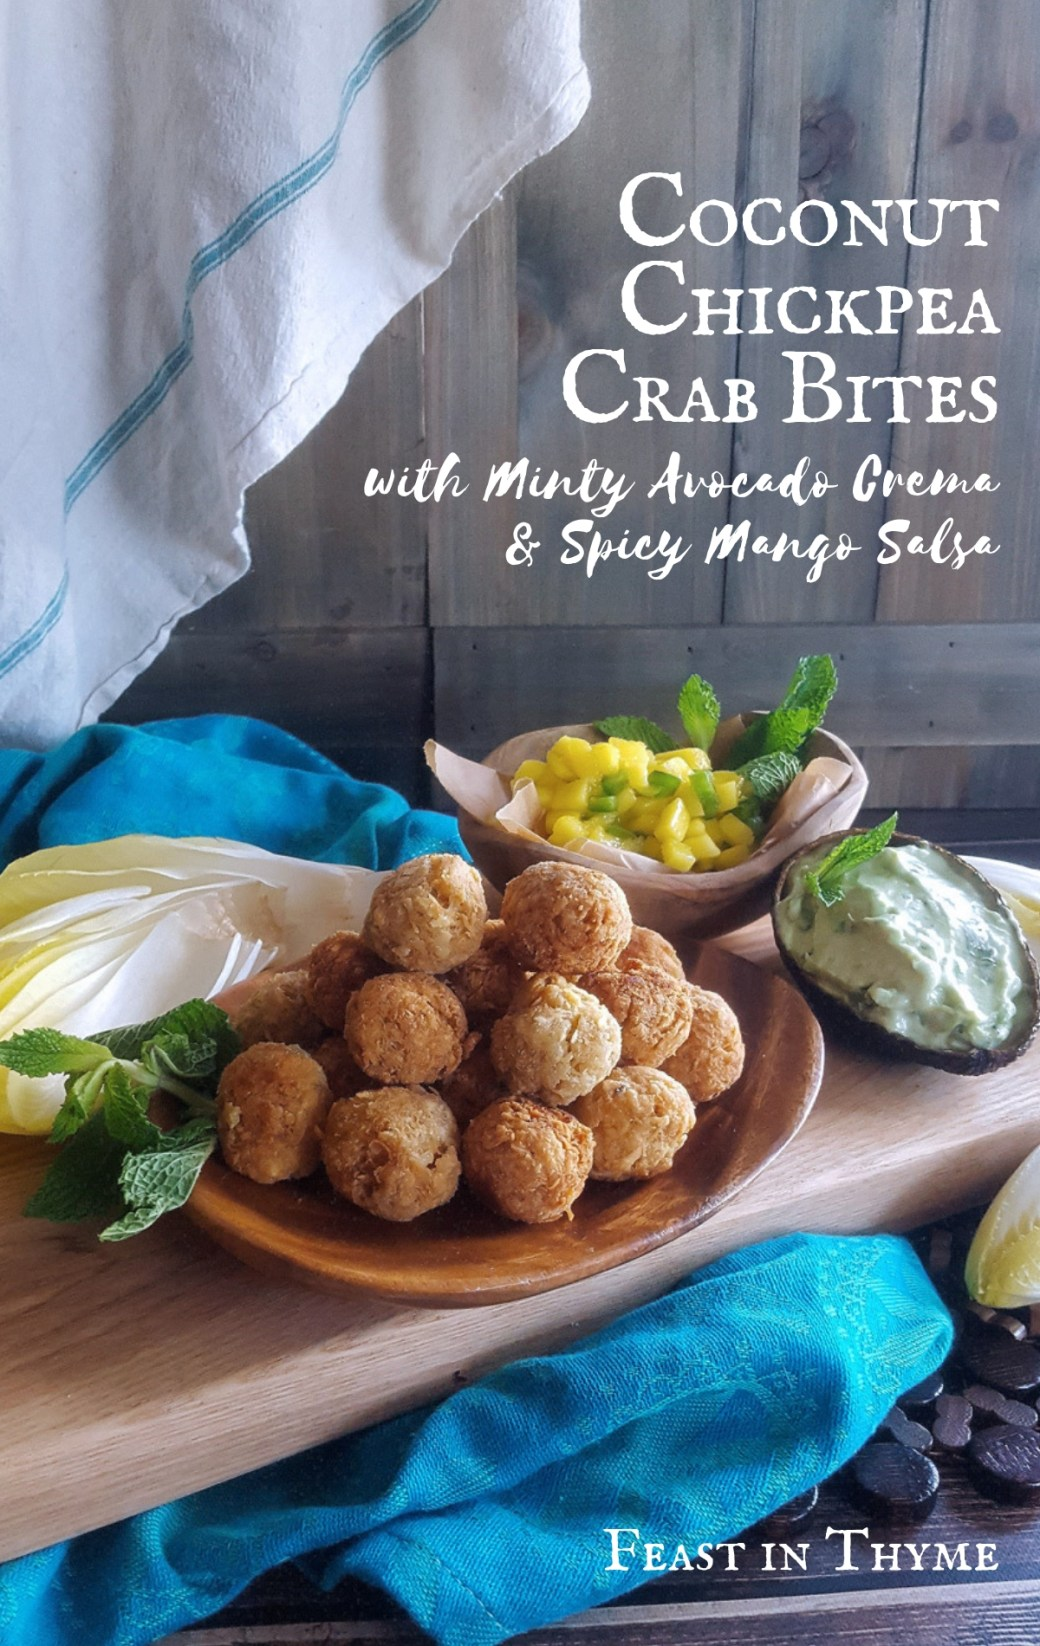 Coconut Chickpea Crab Bites in Endive Cups (Gluten-Free)